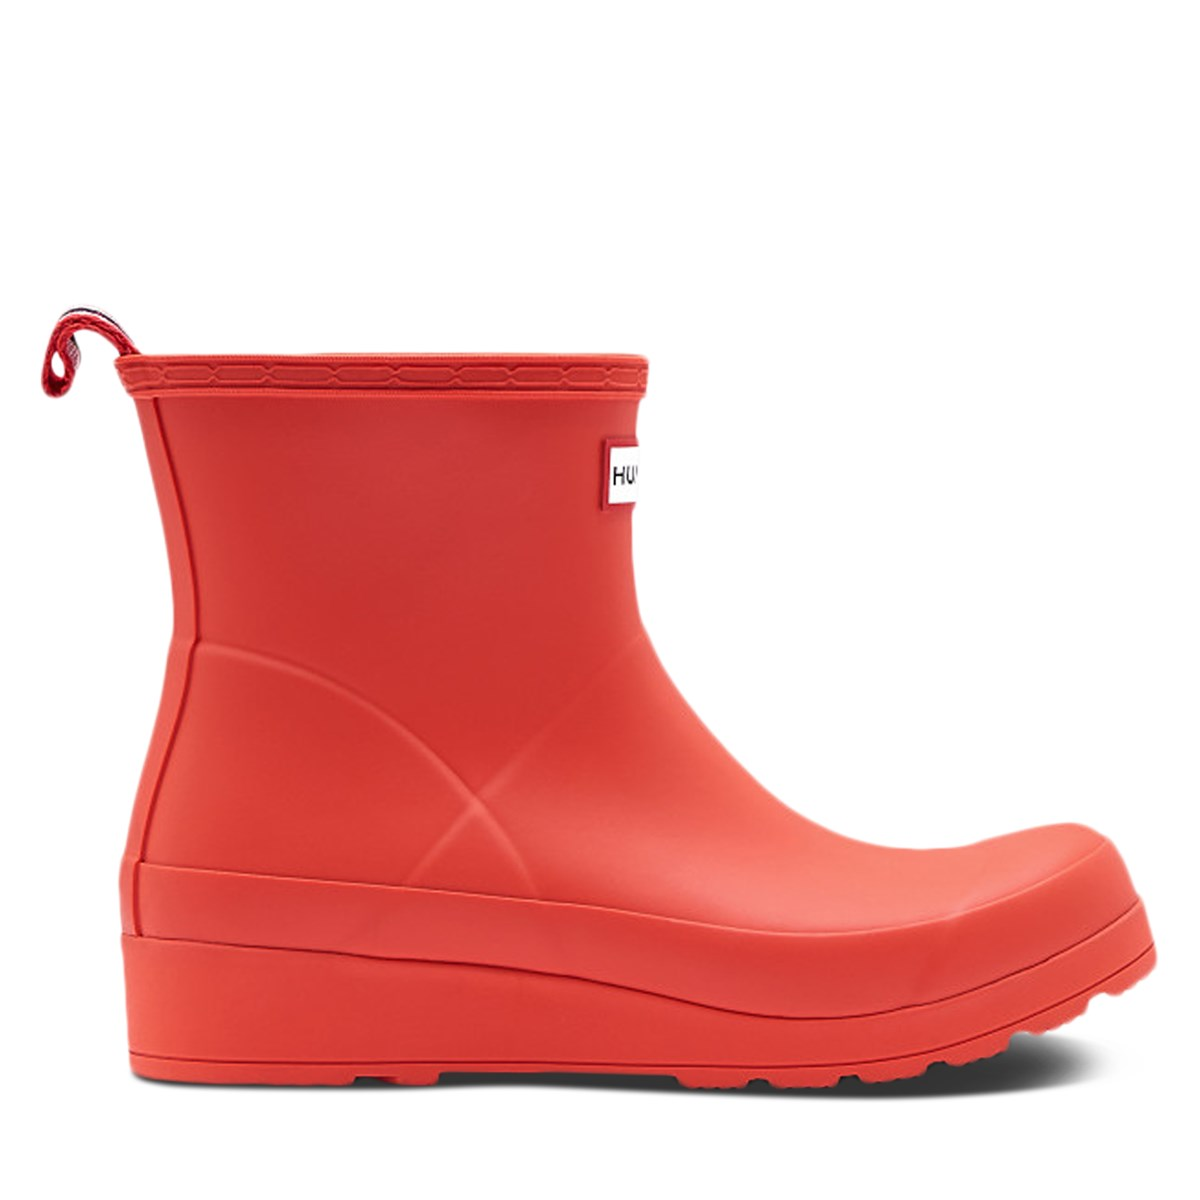 Women's Original Play Short Rain Boots in Red